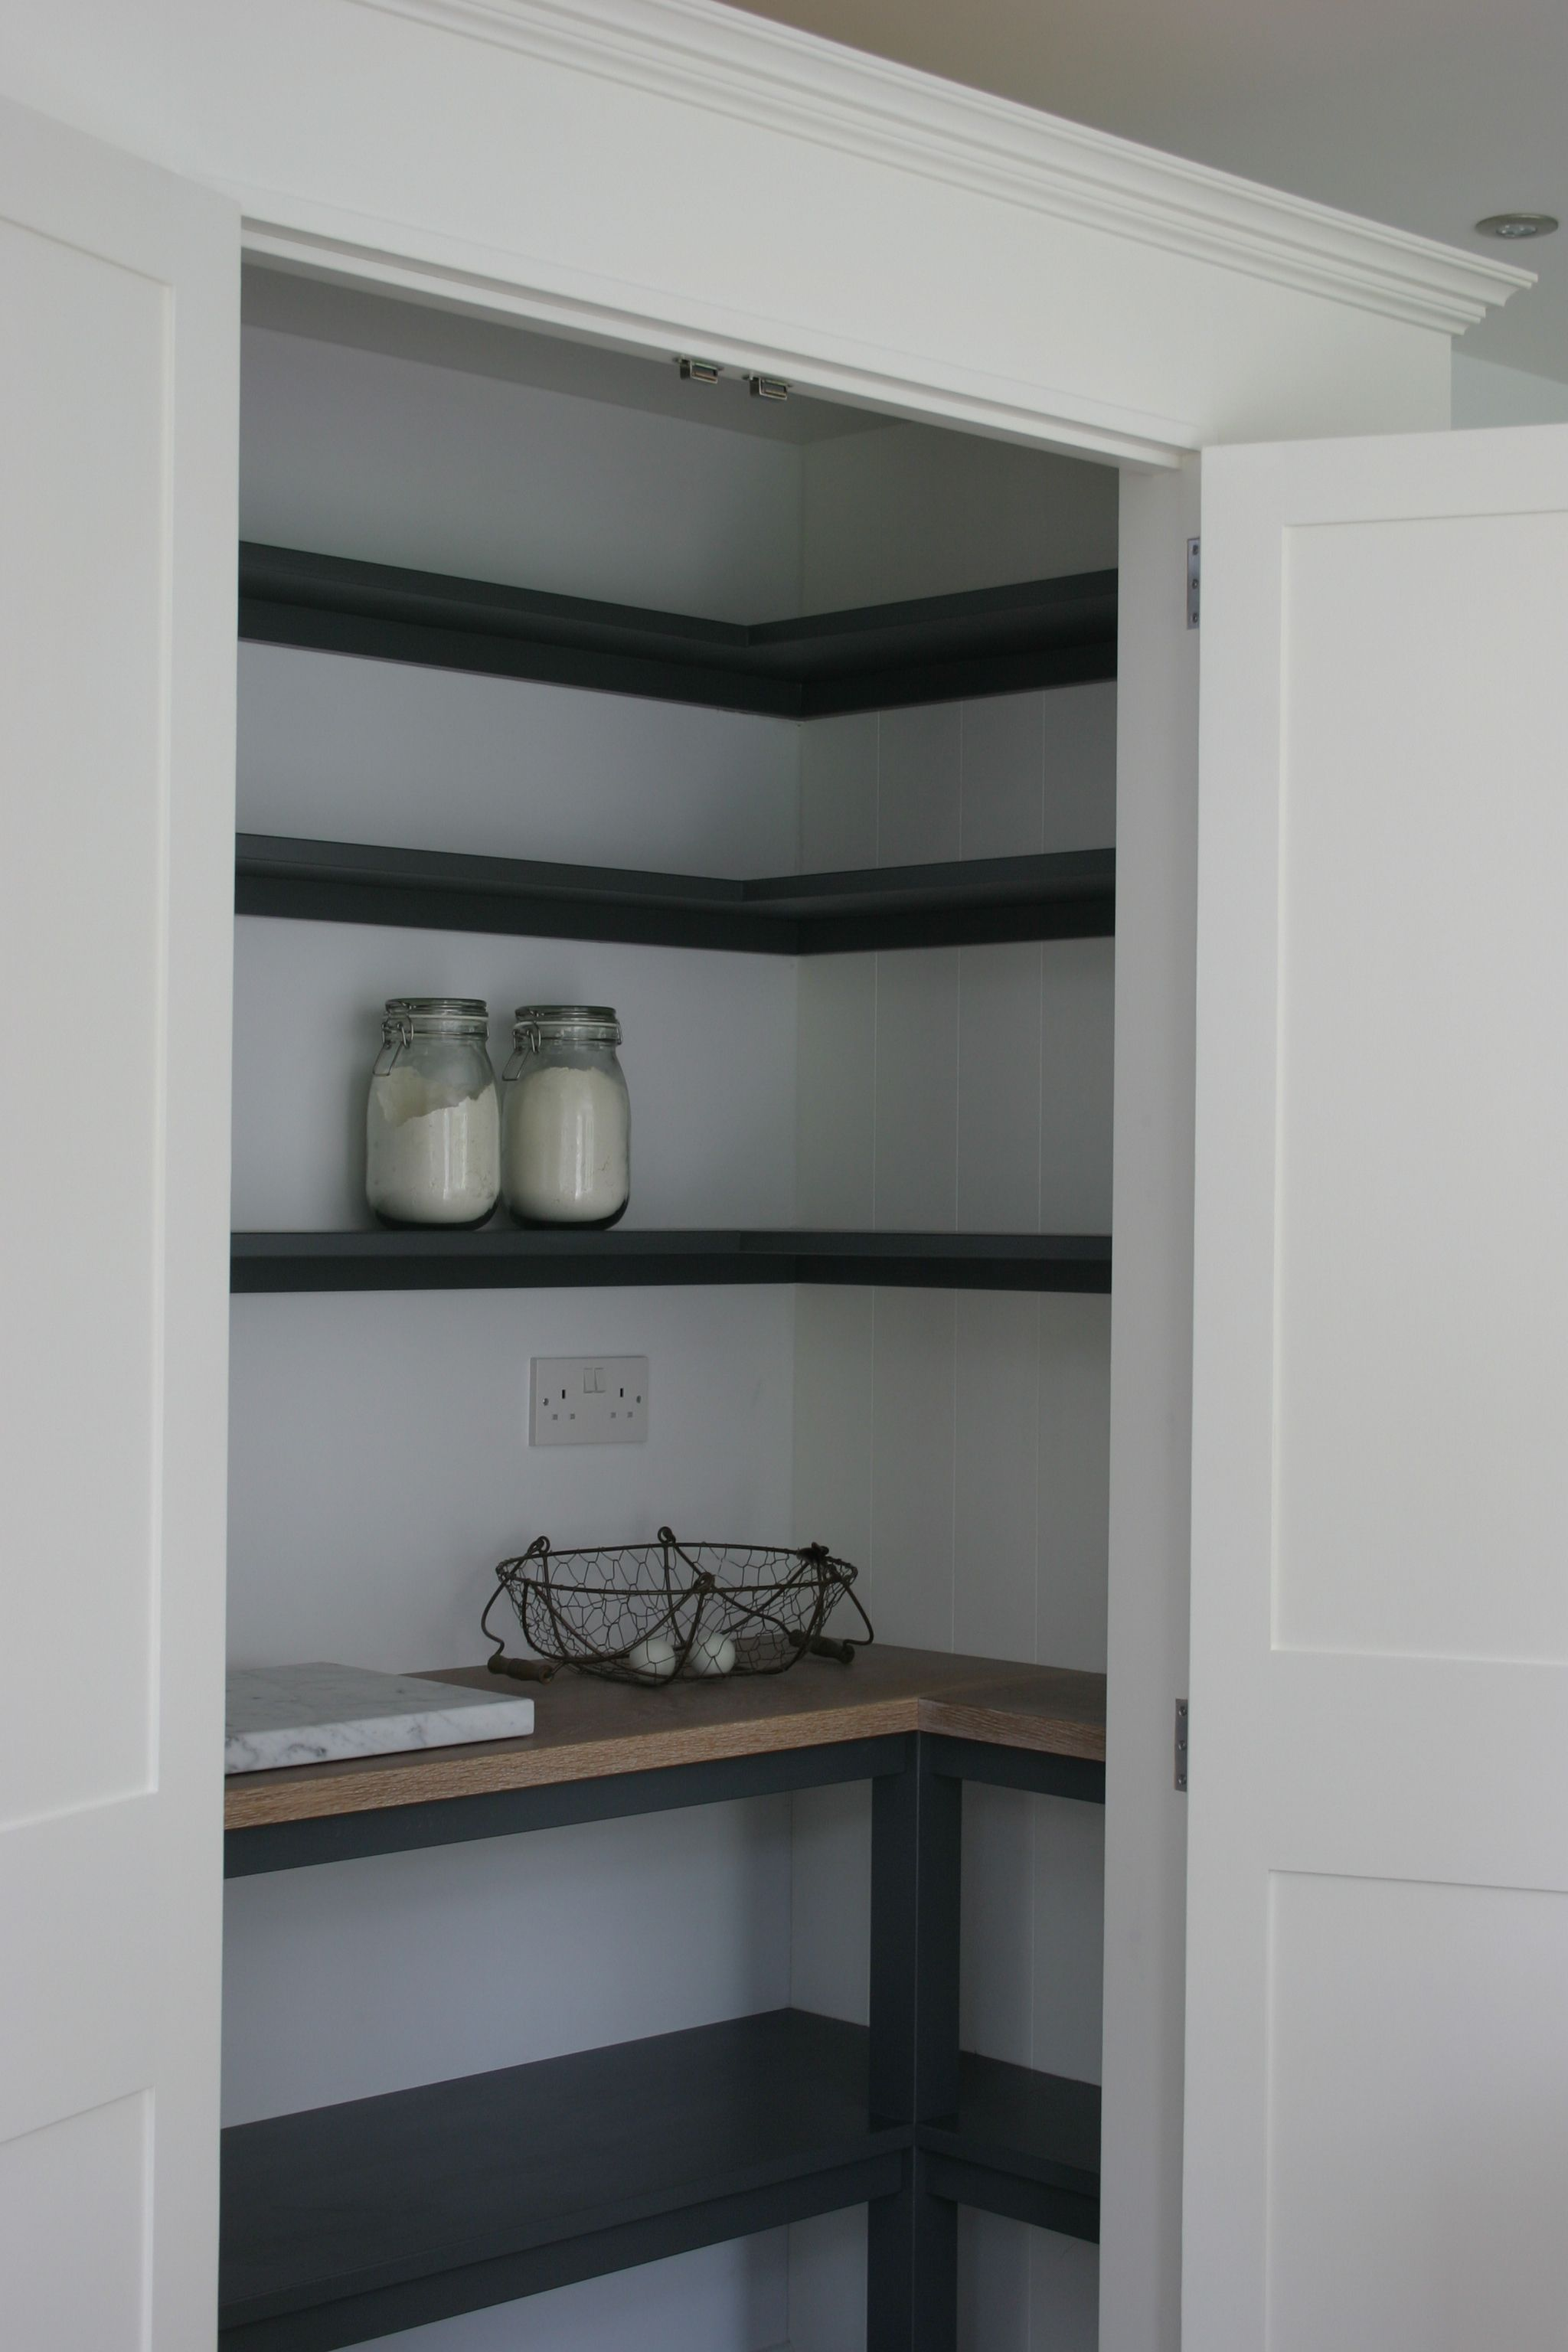 Pantry from one of our latest kitchens near Horsham West Sussex Painted in F  Pantry from one of our latest kitchens near Horsham West Sussex Painted in F